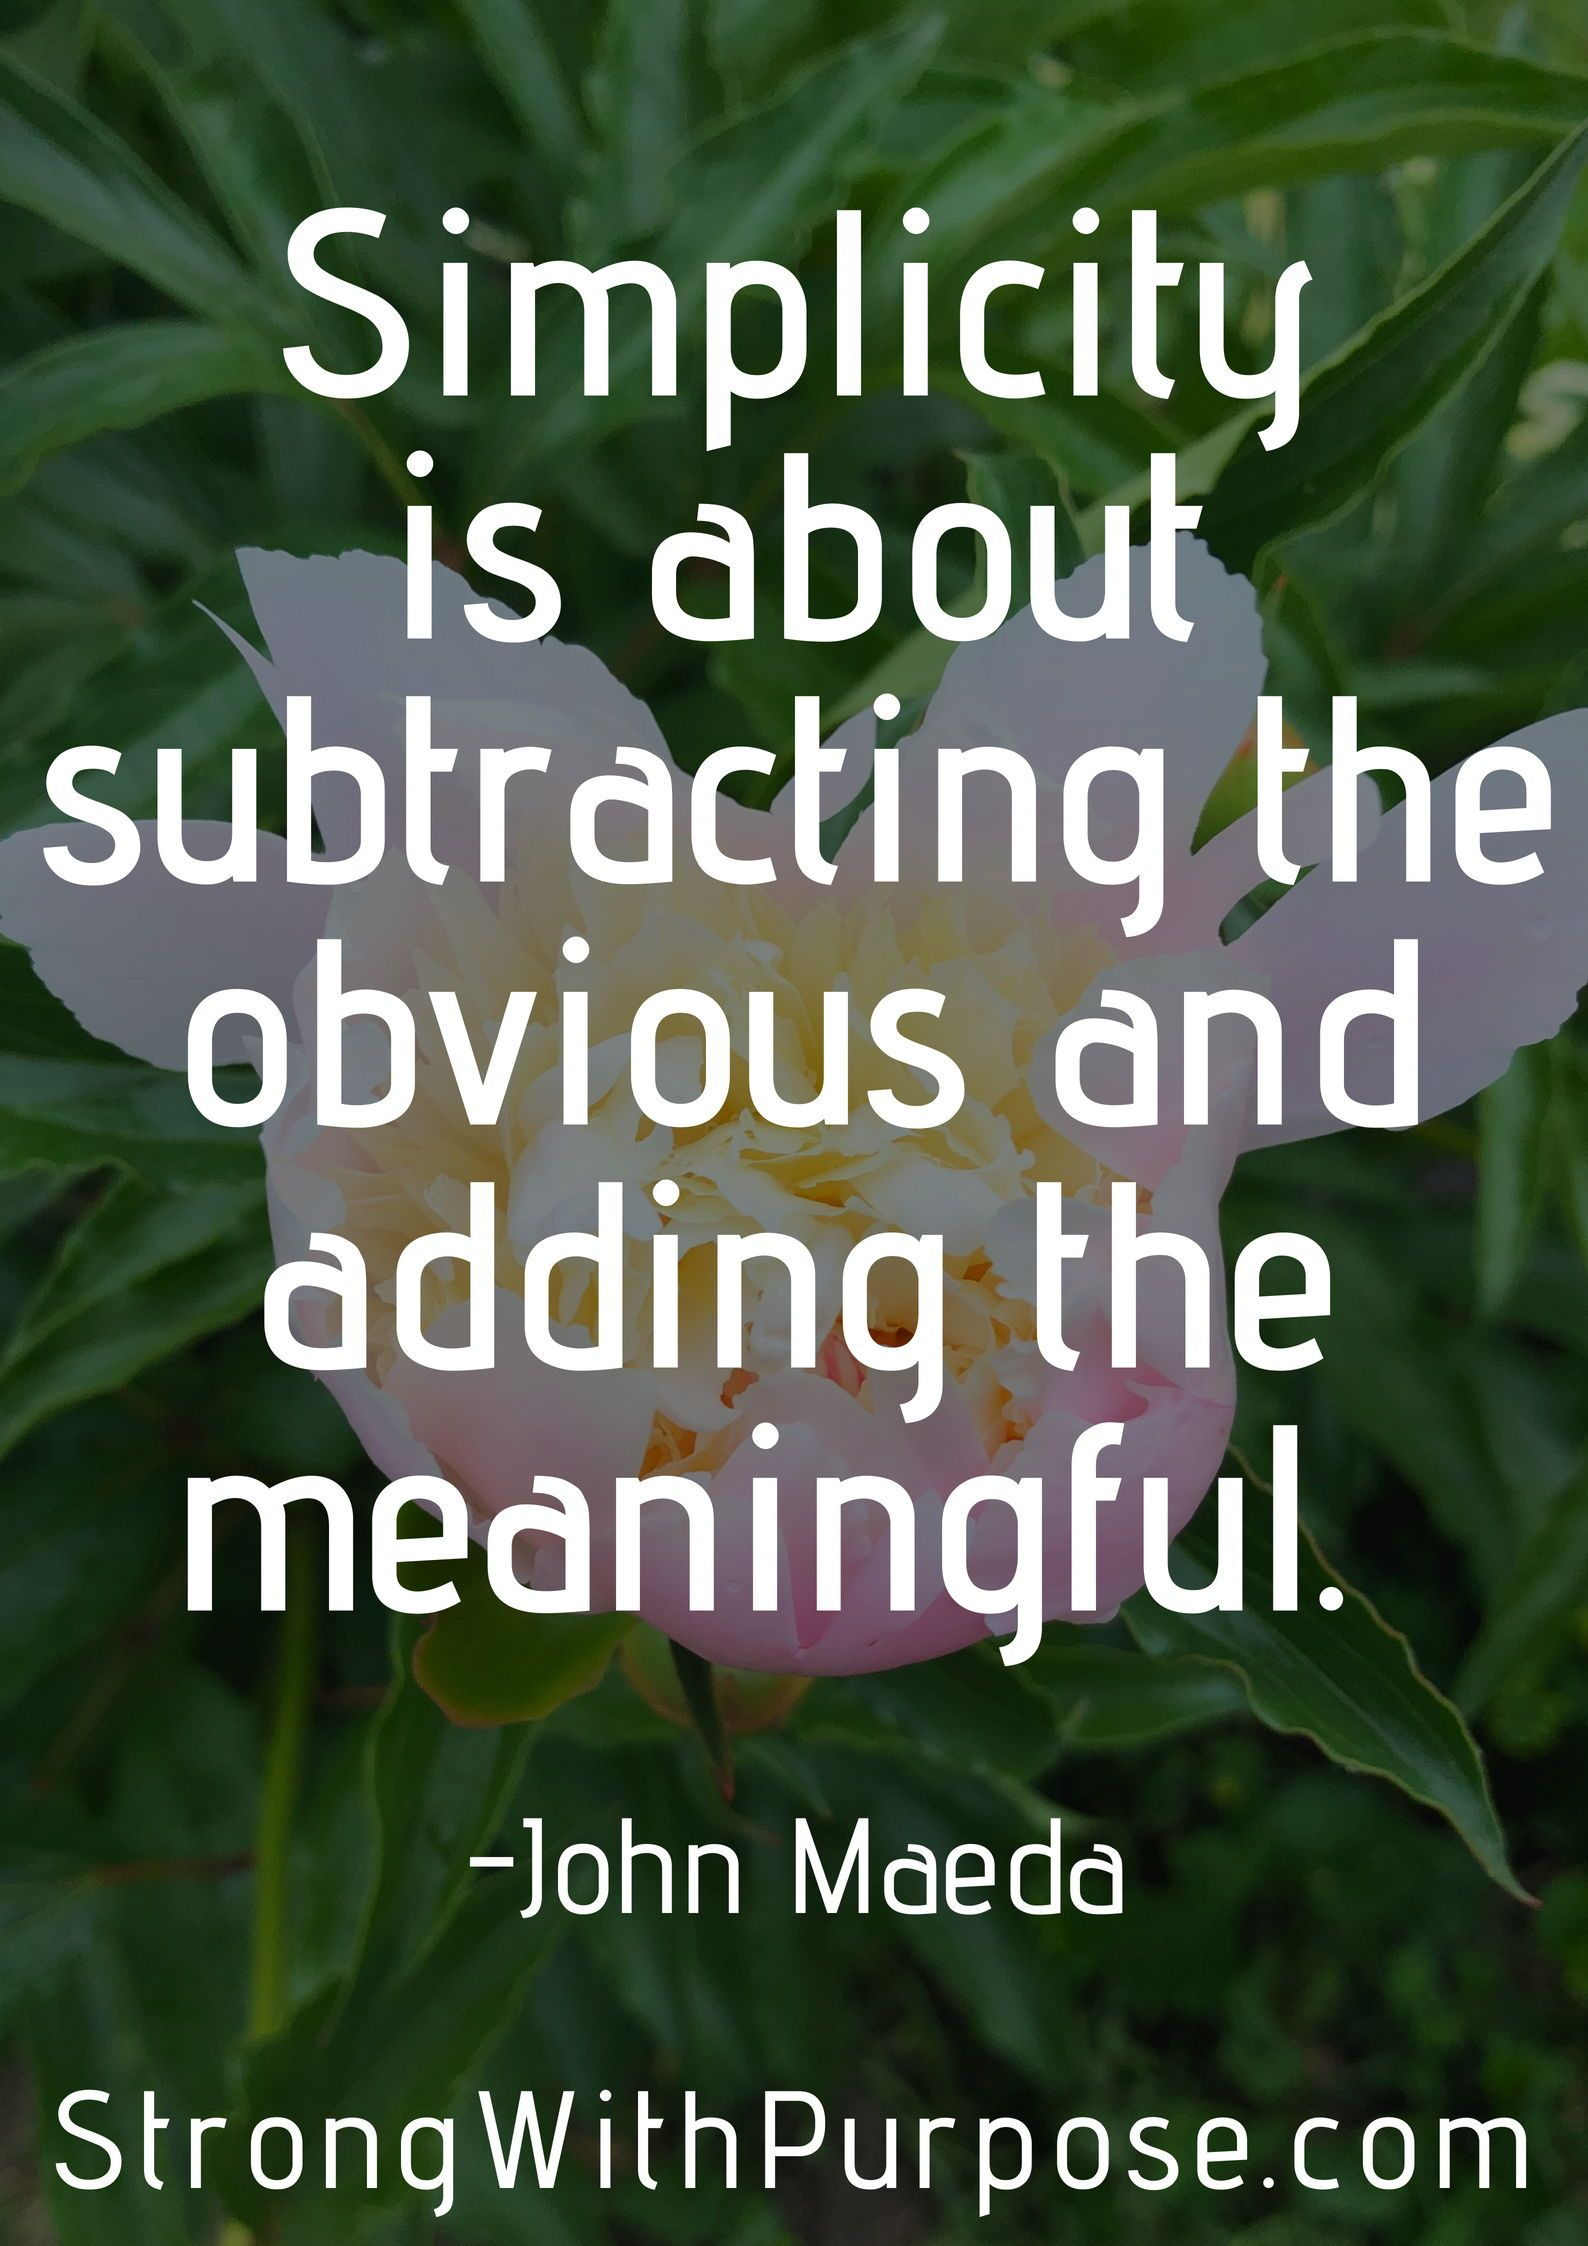 Simplicity Is About Subtracting The Obvious And Adding The Meaningful Read These 5 Inspiring Simplicity Quotes Simplicity Quotes Meaningful Quotes Life Quotes